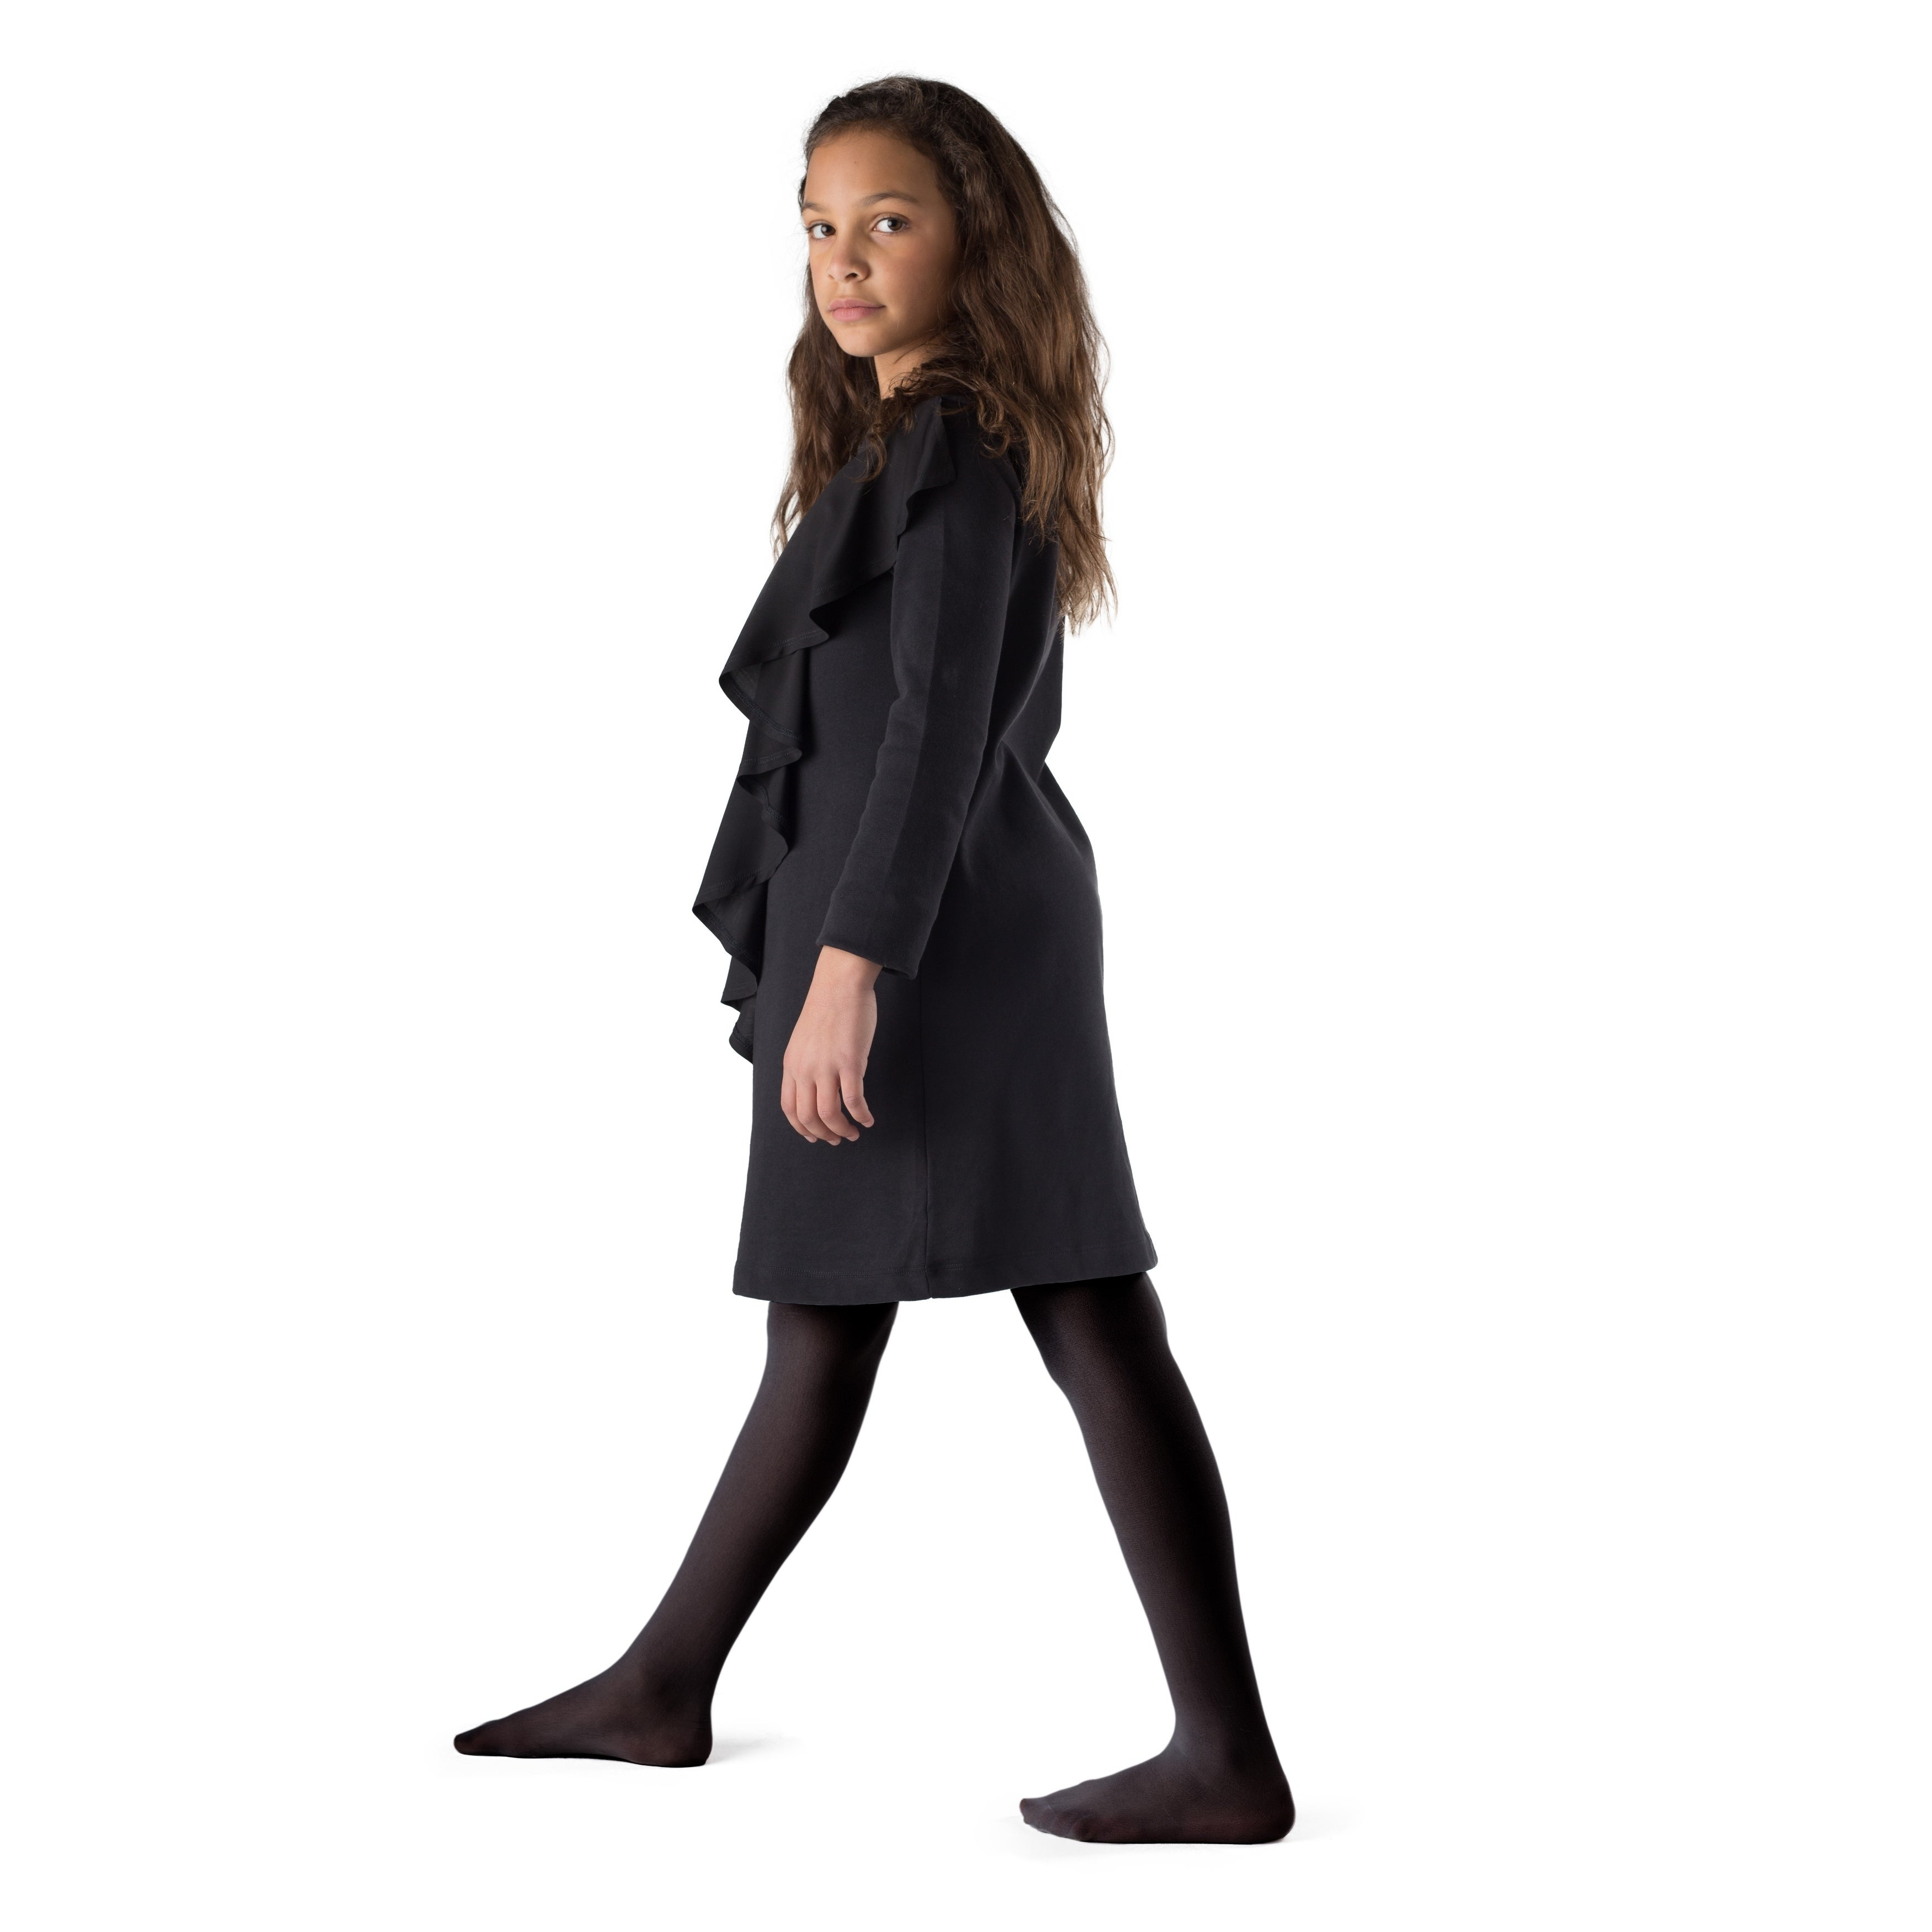 dcf86a30f9dc2 Shop Girl's Opaque Dance footed tights (2pack) - Free Shipping On Orders  Over $45 - Overstock - 22649137